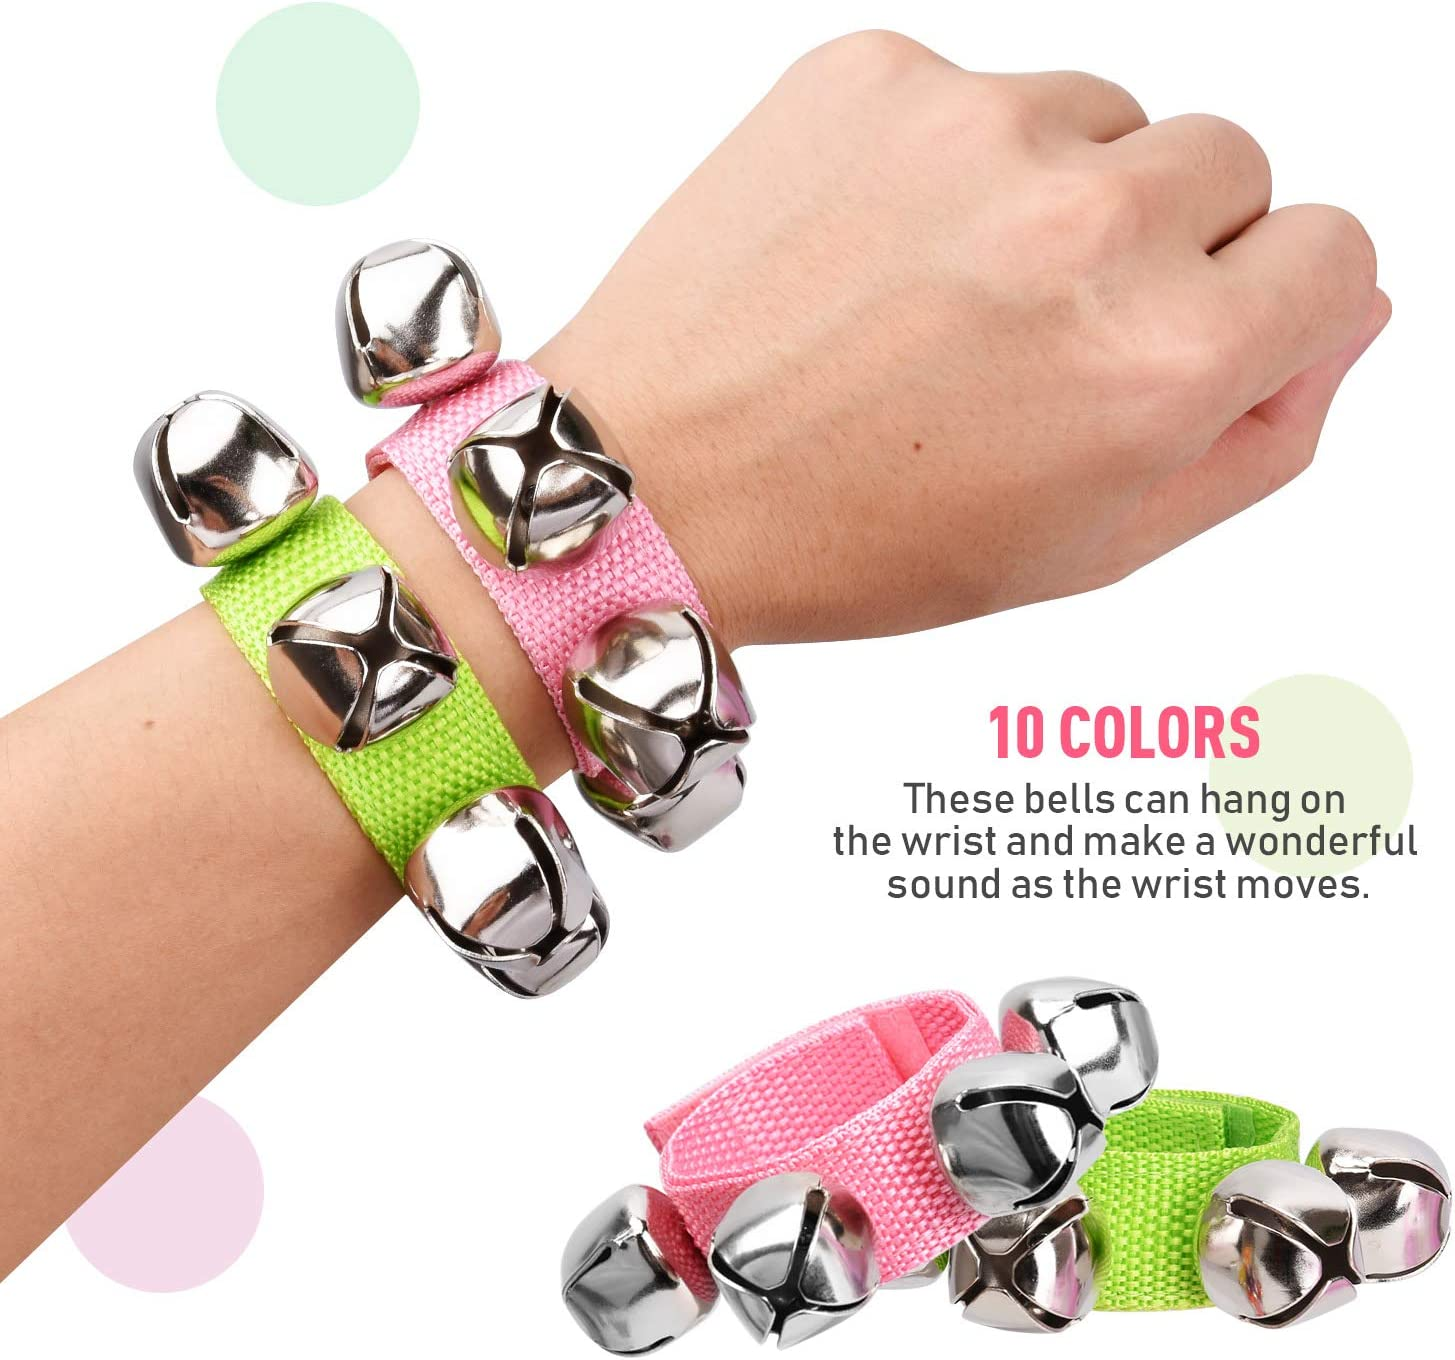 10 Colors 20 Pcs Wrist Band Jingle Bells Instrument Percussion Musical Orchestra Rattles Party Favors Toys Wrist Bells /& Ankle Bells KTV Birthday Gifts Musical Rhythm Toys for Children